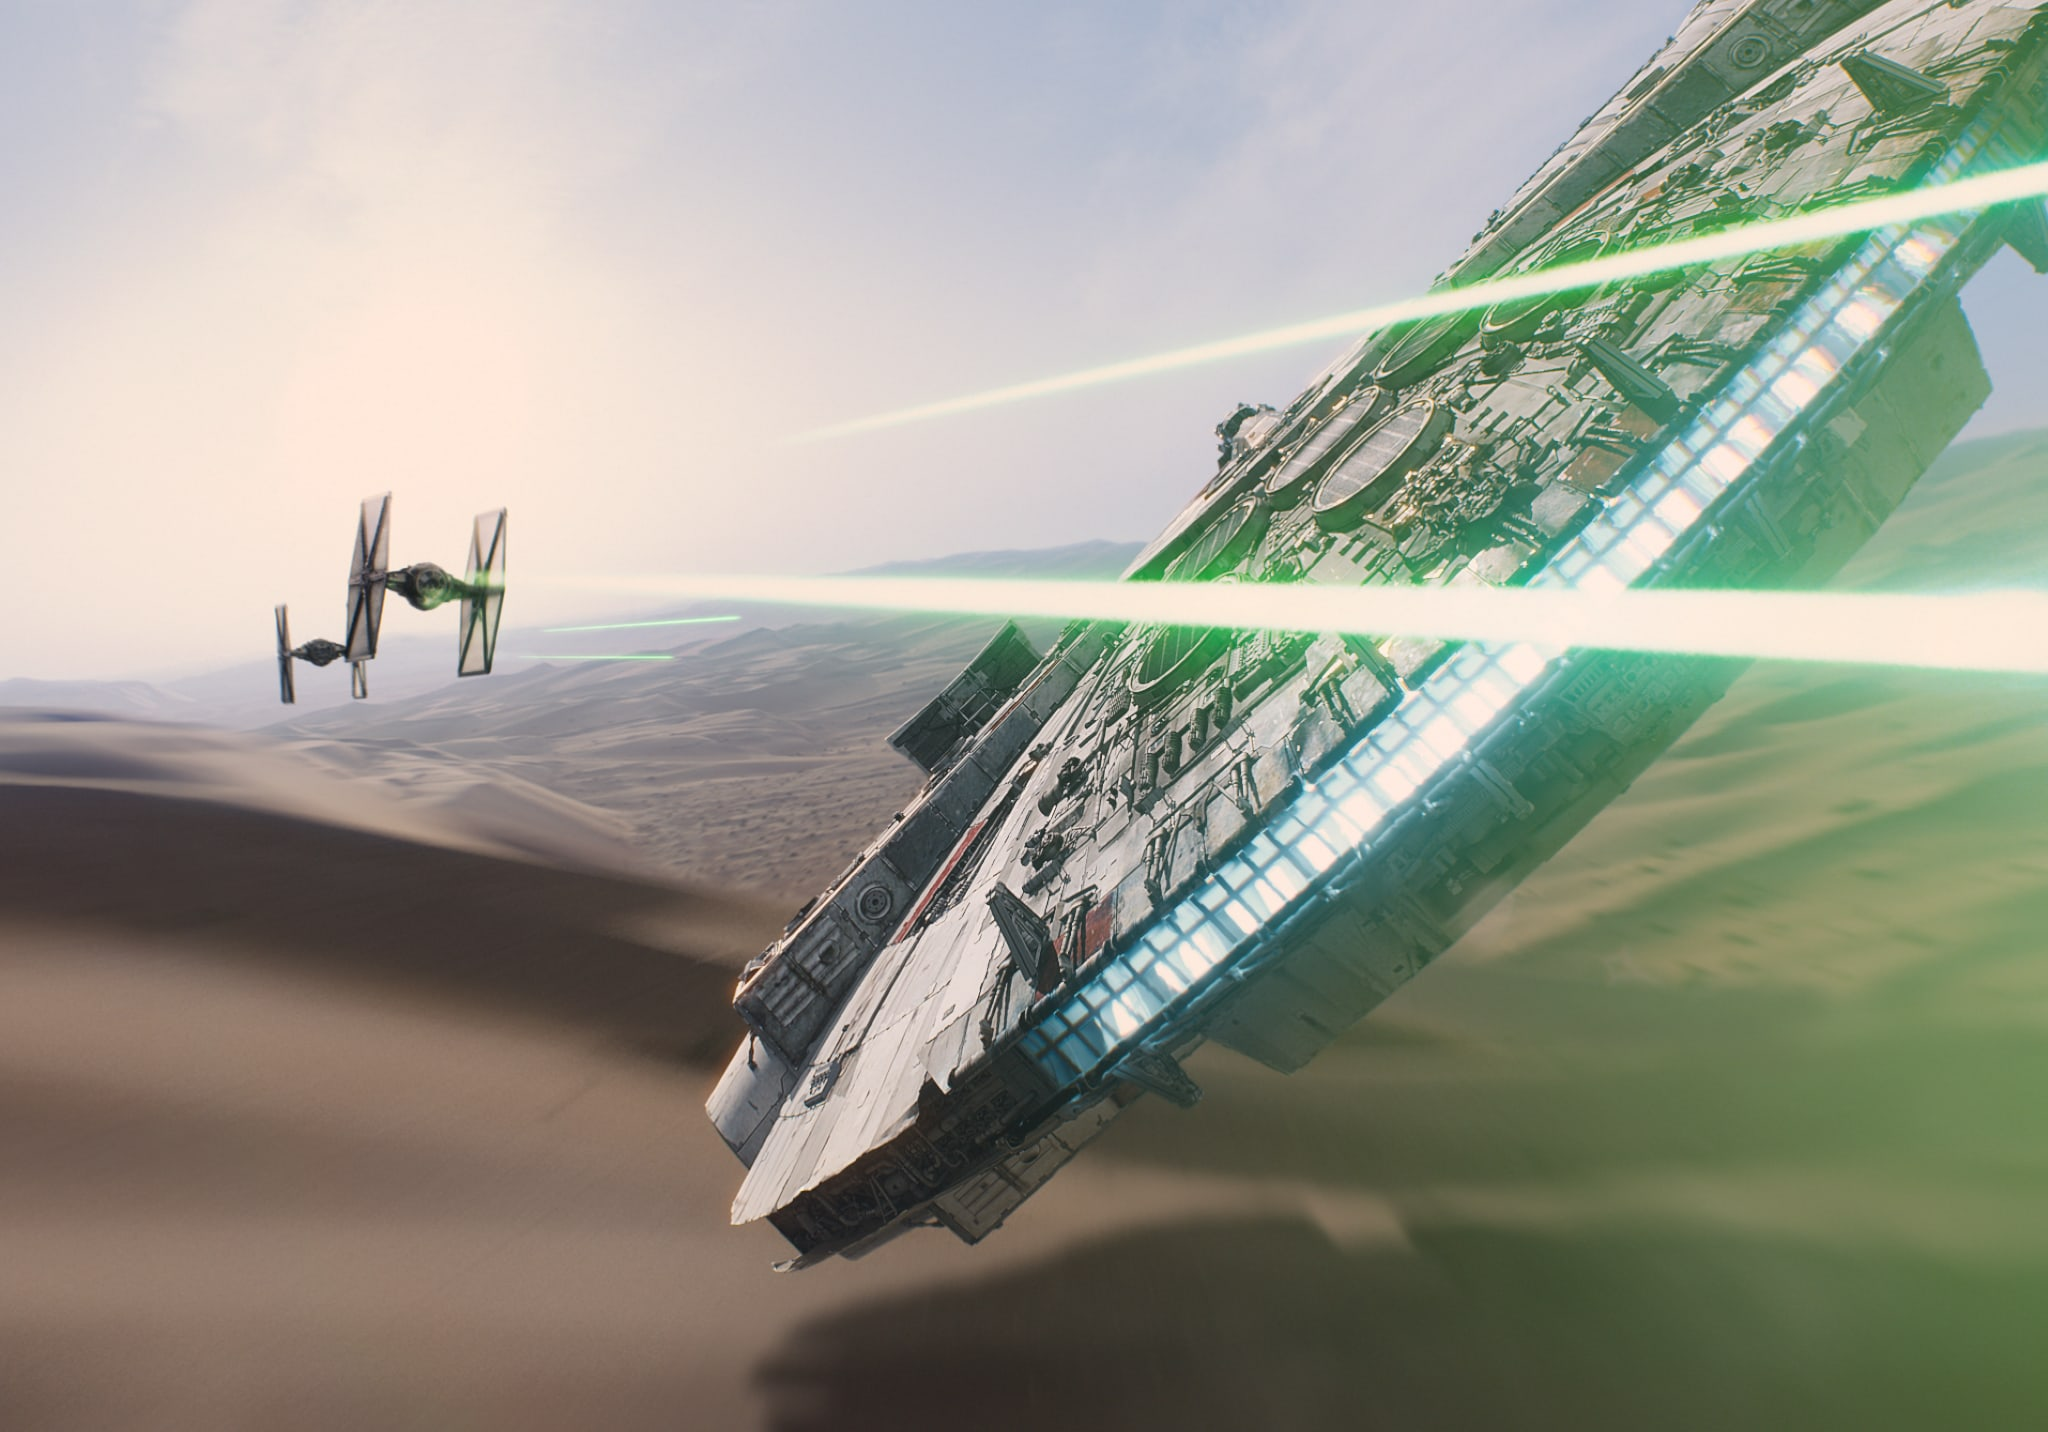 The Millennium Falcon spacecraft battles TIE fighters of the First Order.